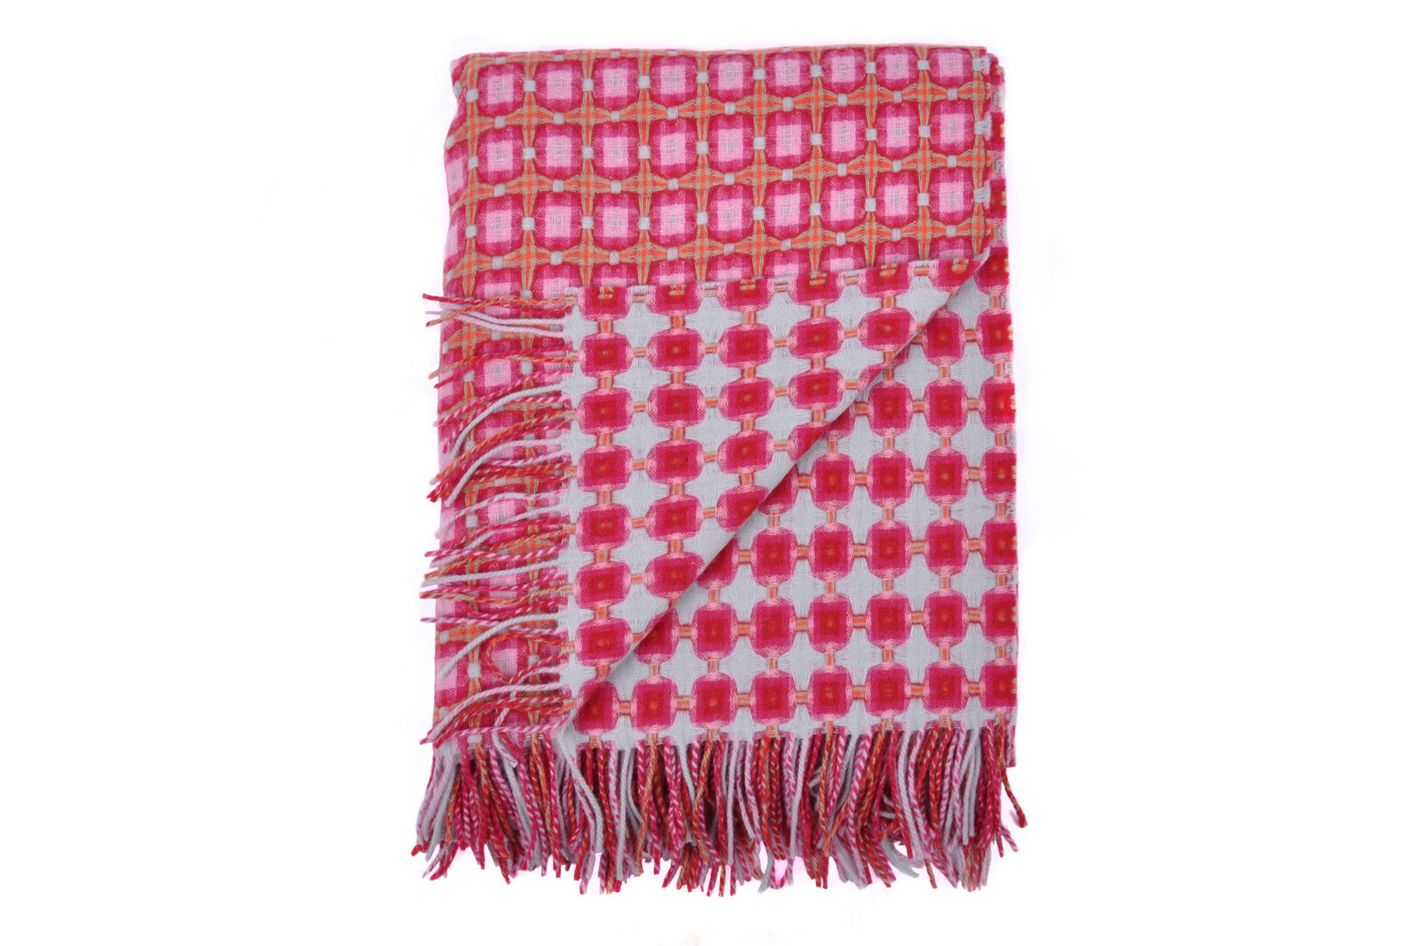 Paulette Rollo Lambswool Basket Weave Throw